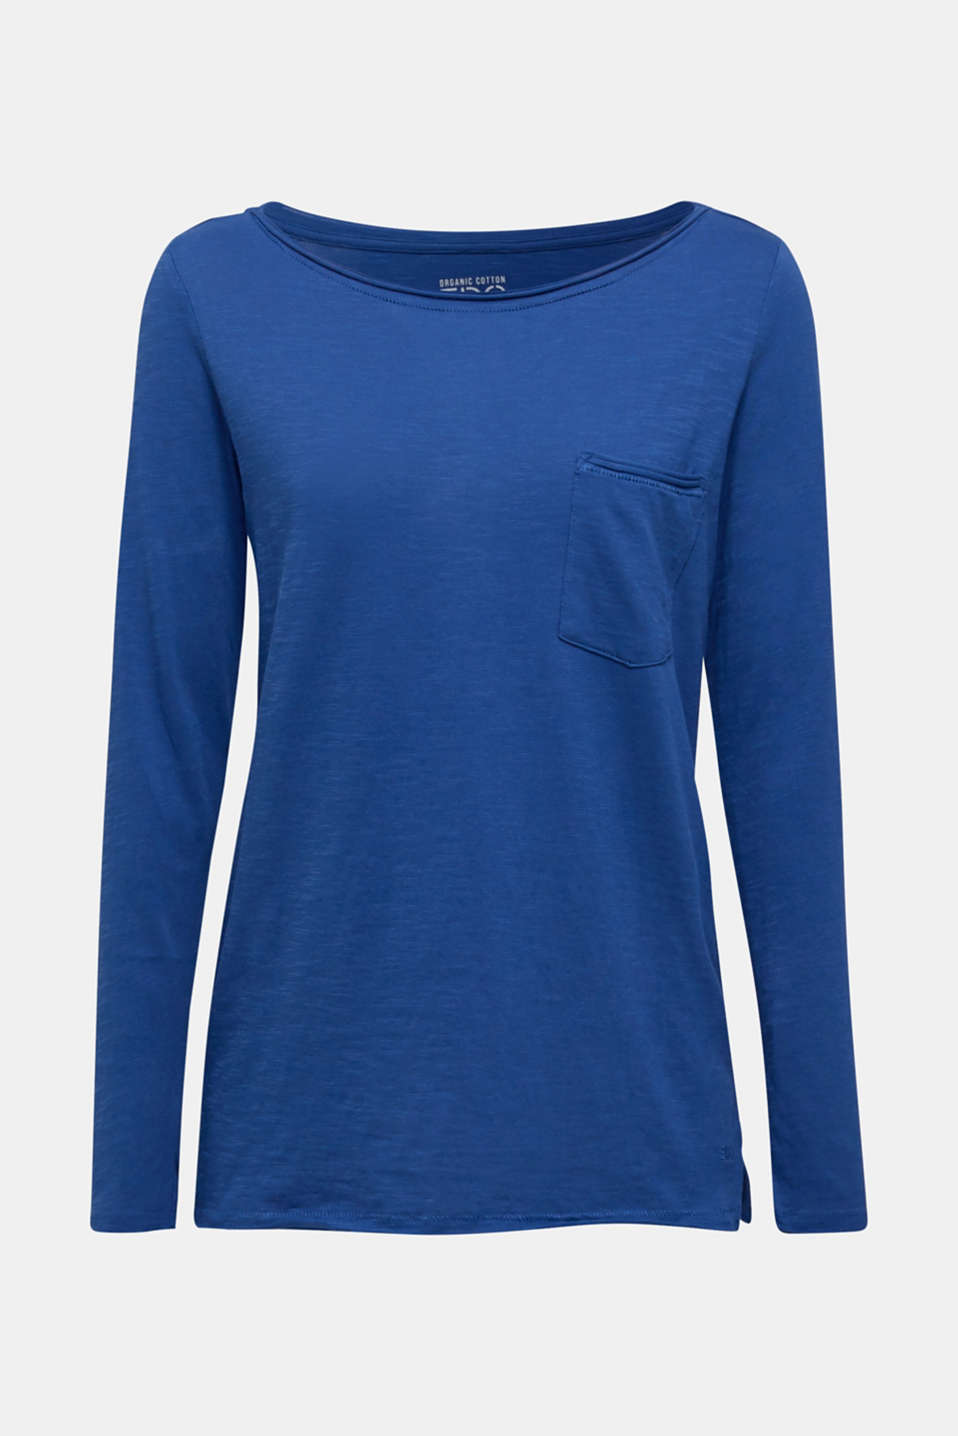 Long sleeve top with rolled edges, 100% cotton, DARK BLUE 4, detail image number 6